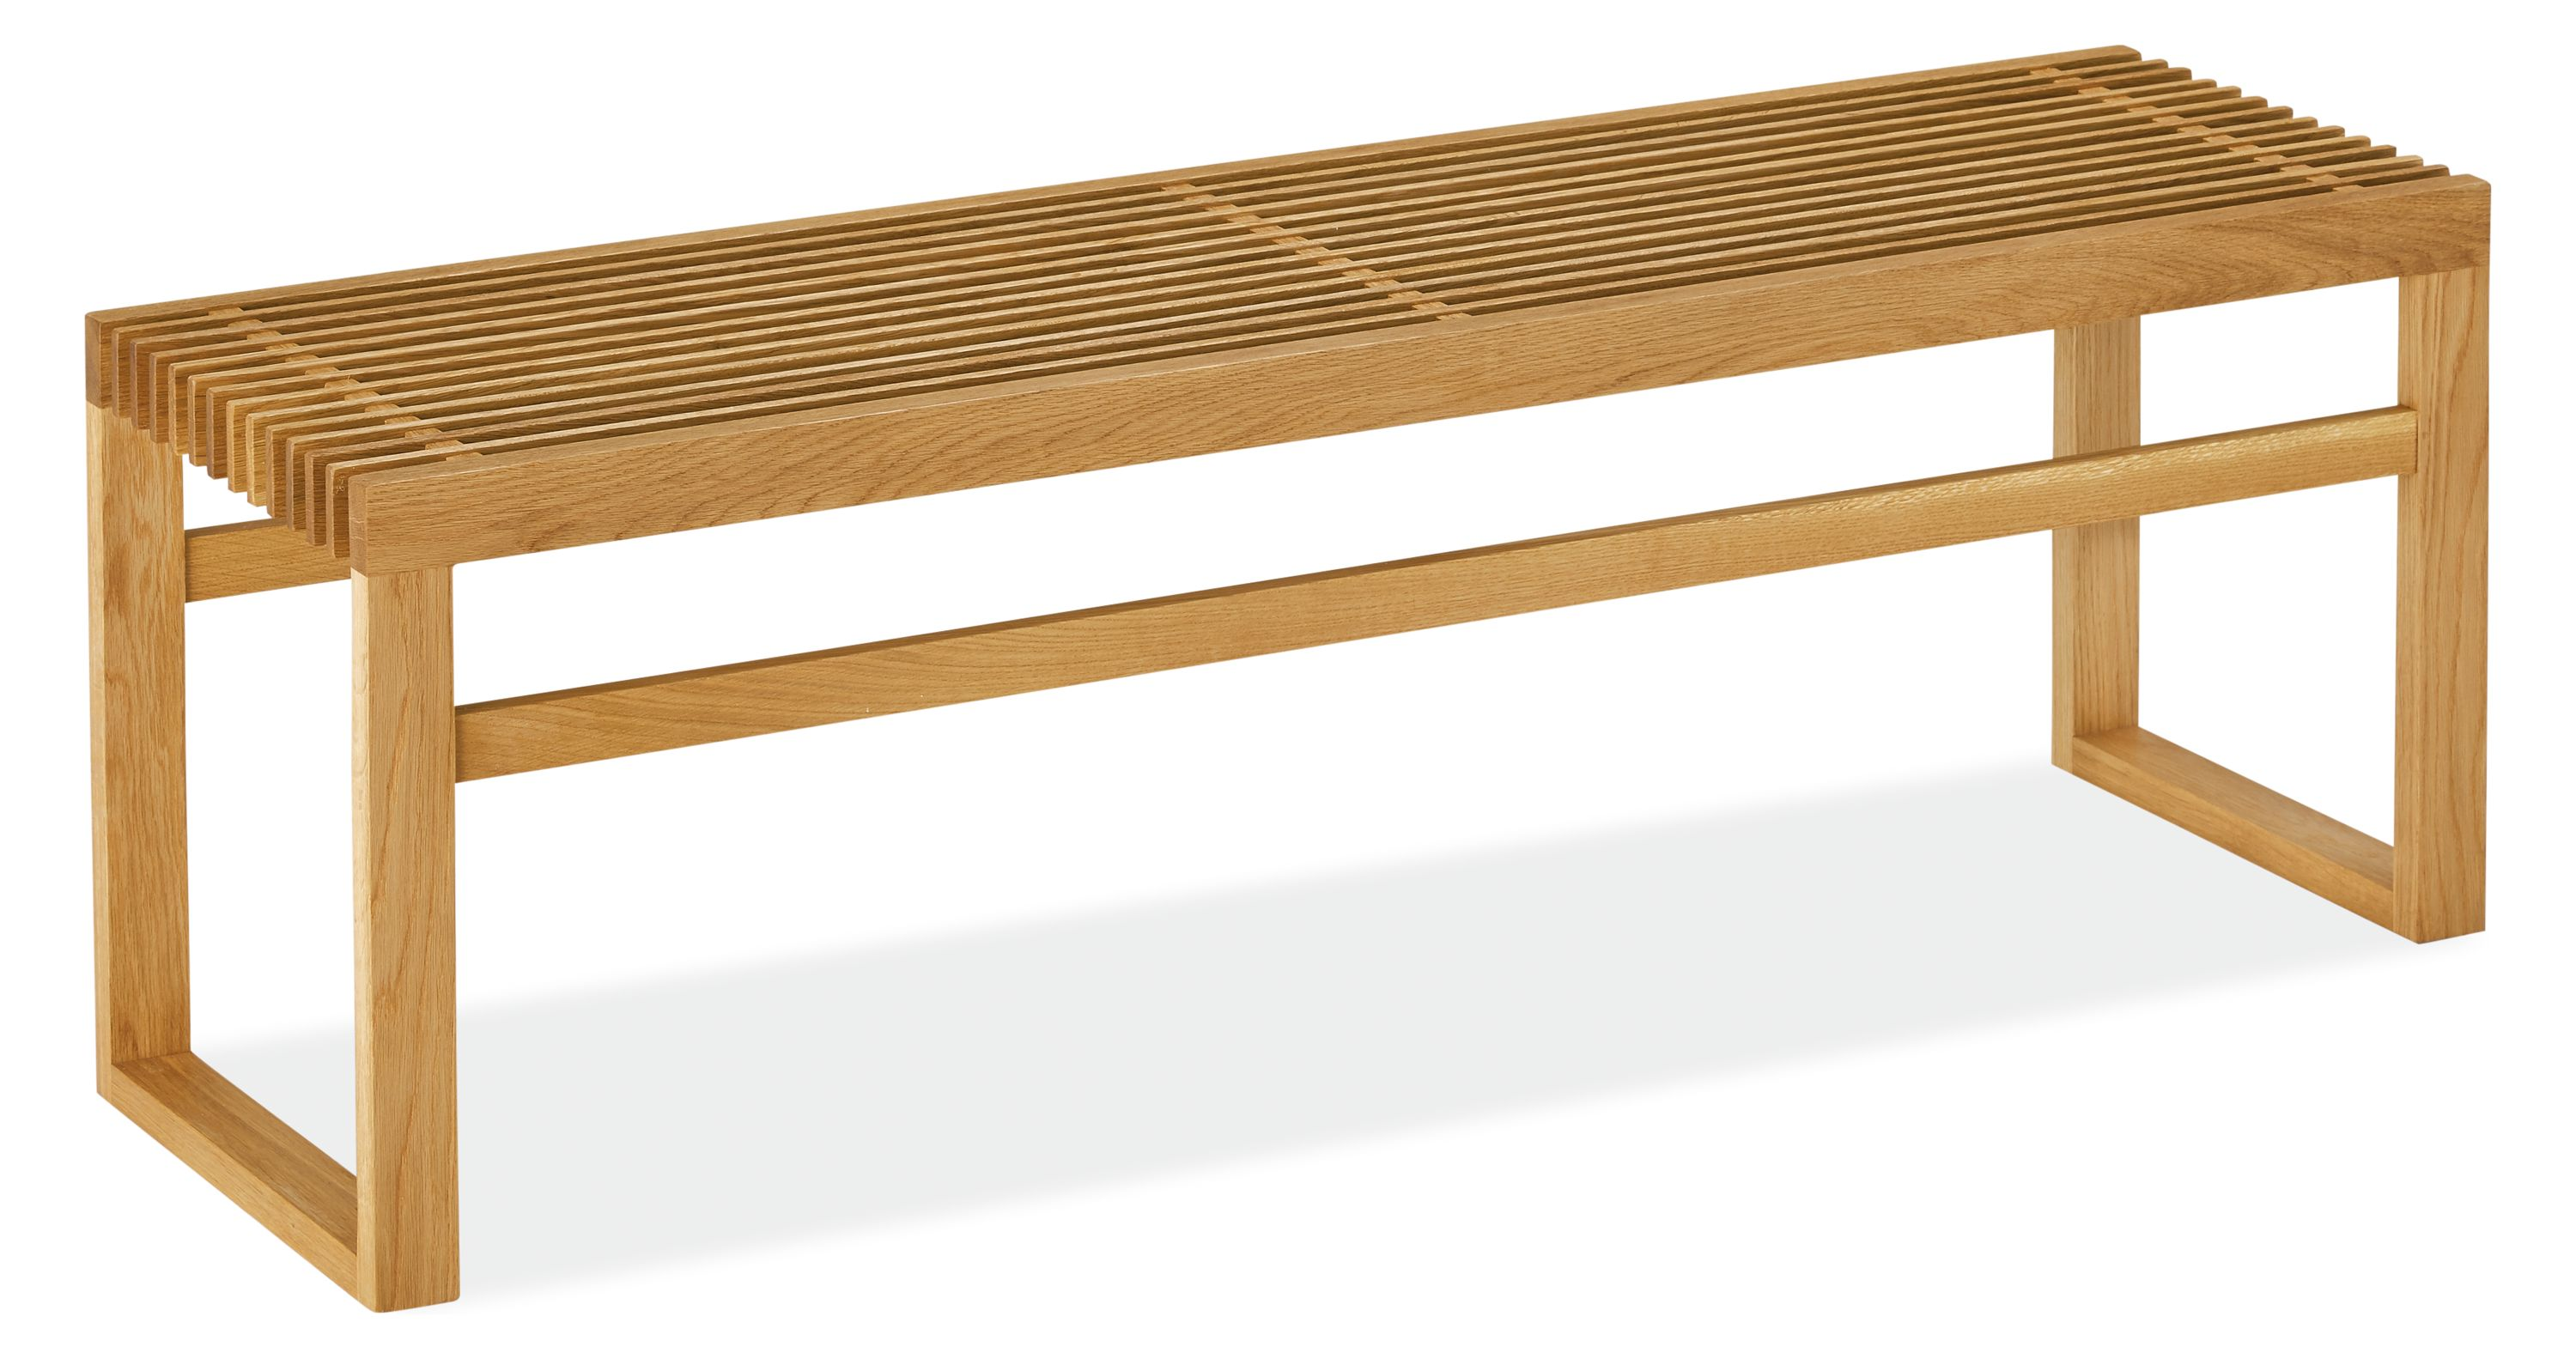 Ewing Bench Modern Benches Stools Ottomans Modern Living Room Furniture Room Board